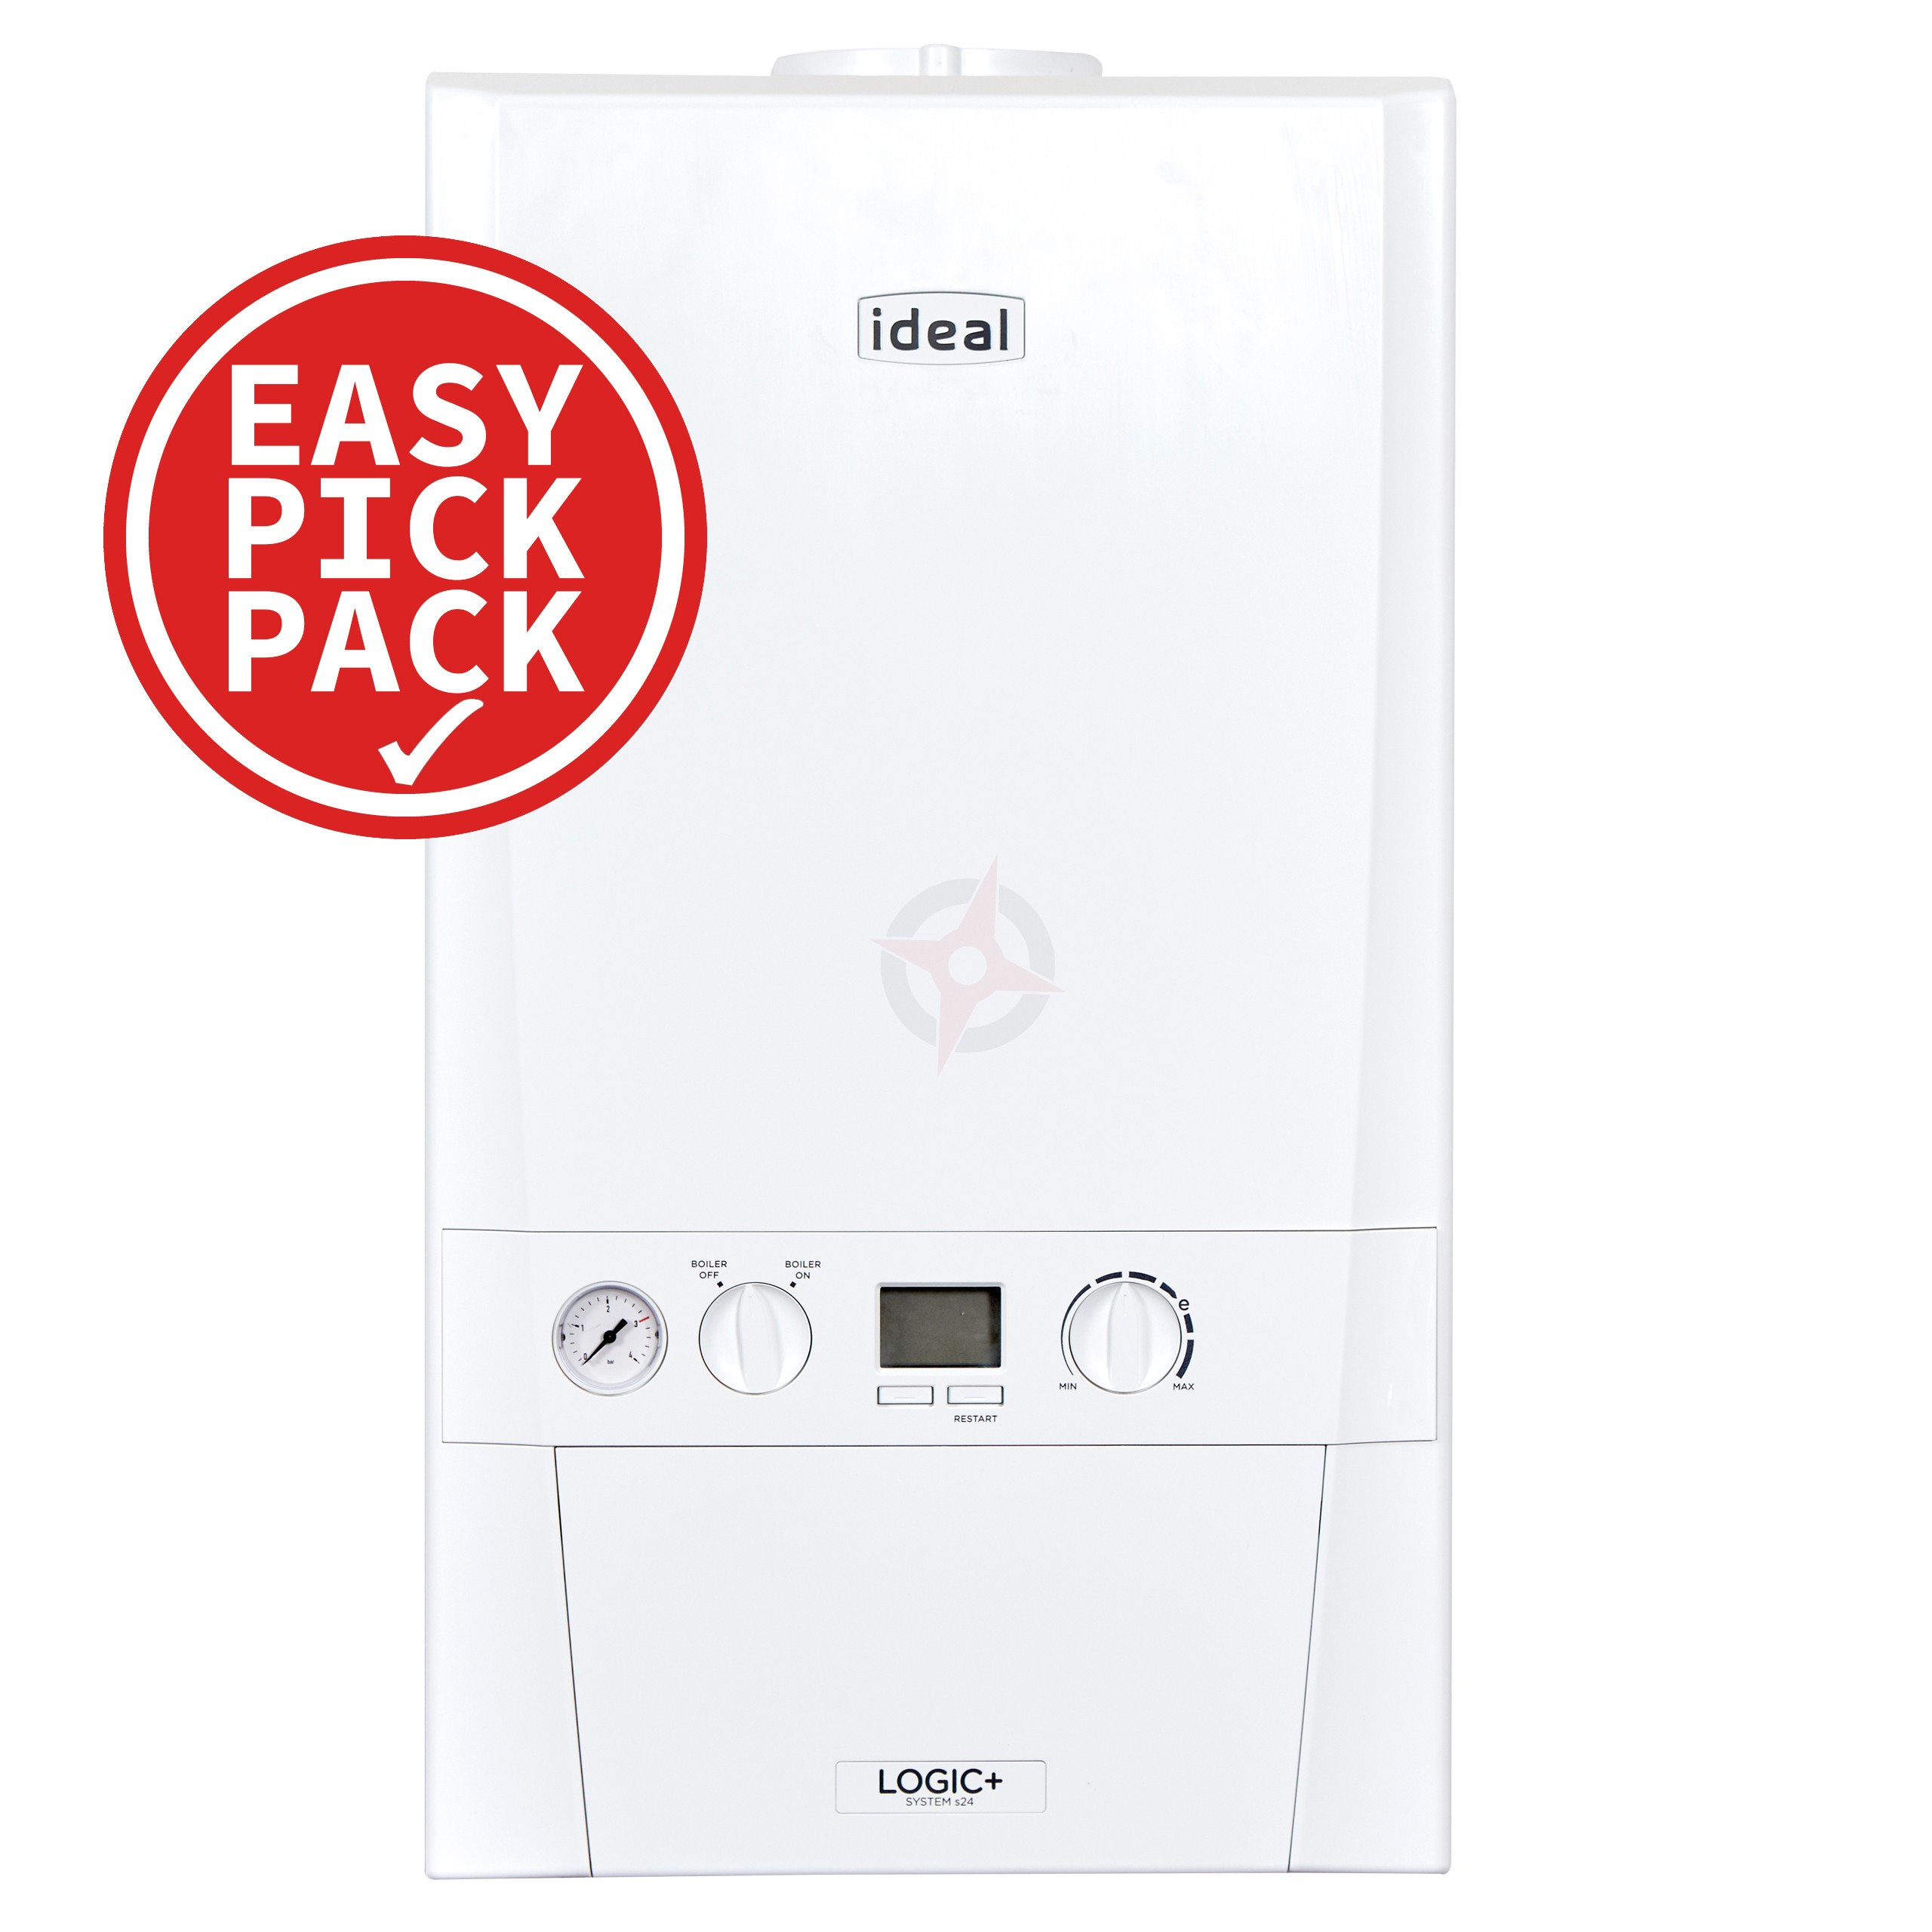 Ideal Logic+ (Plus Model) 15 (ErP) System Boiler Easy Pick Pack